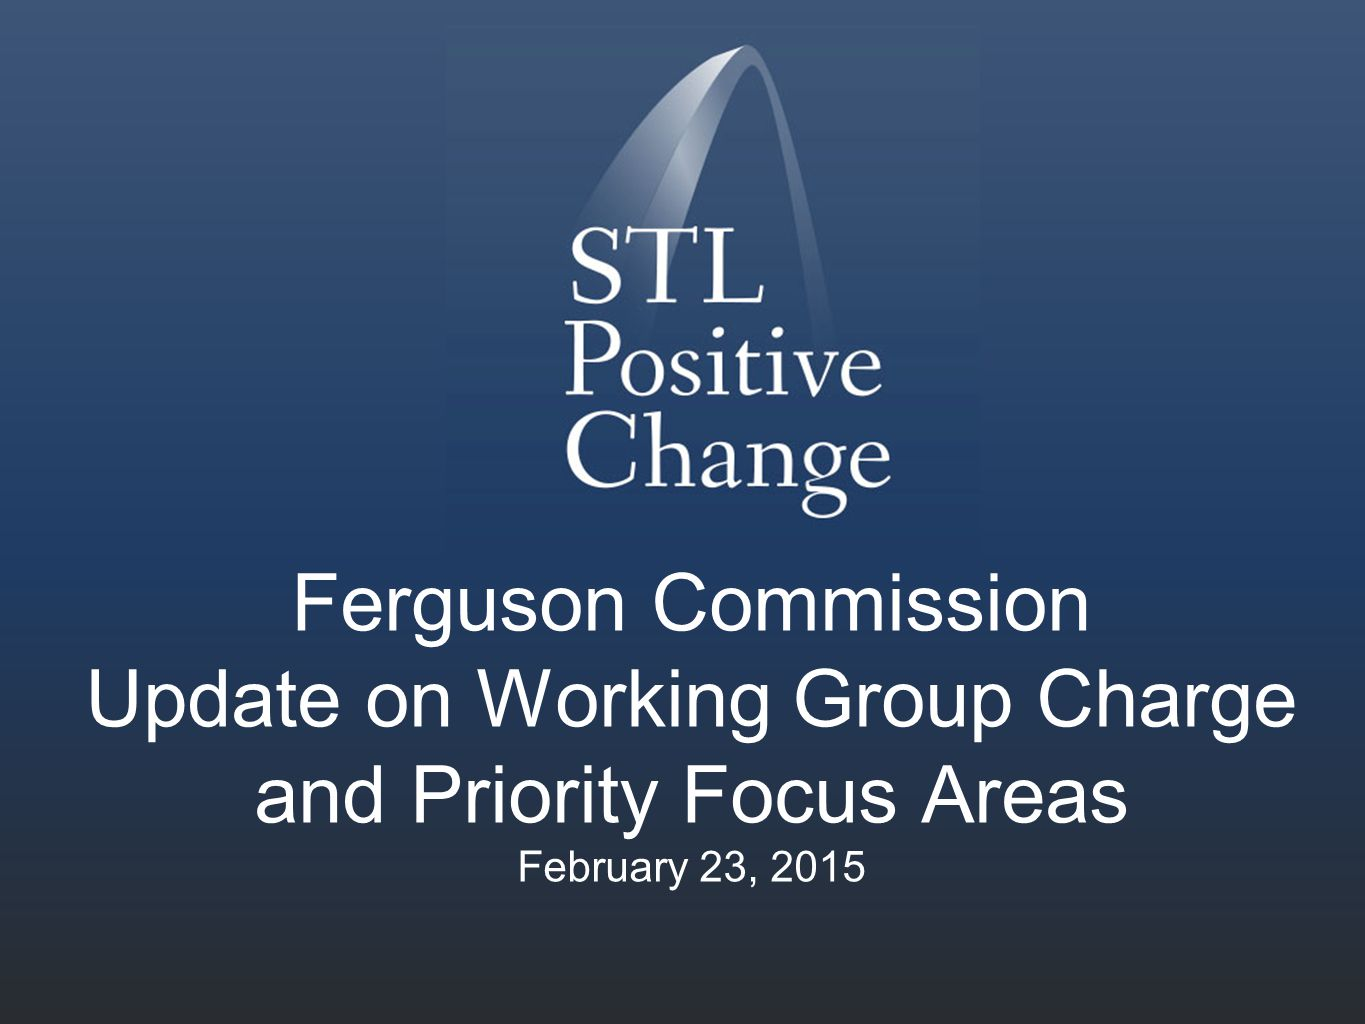 Ferguson Commission Update on Working Group Charge and Priority Focus Areas February 23, 2015